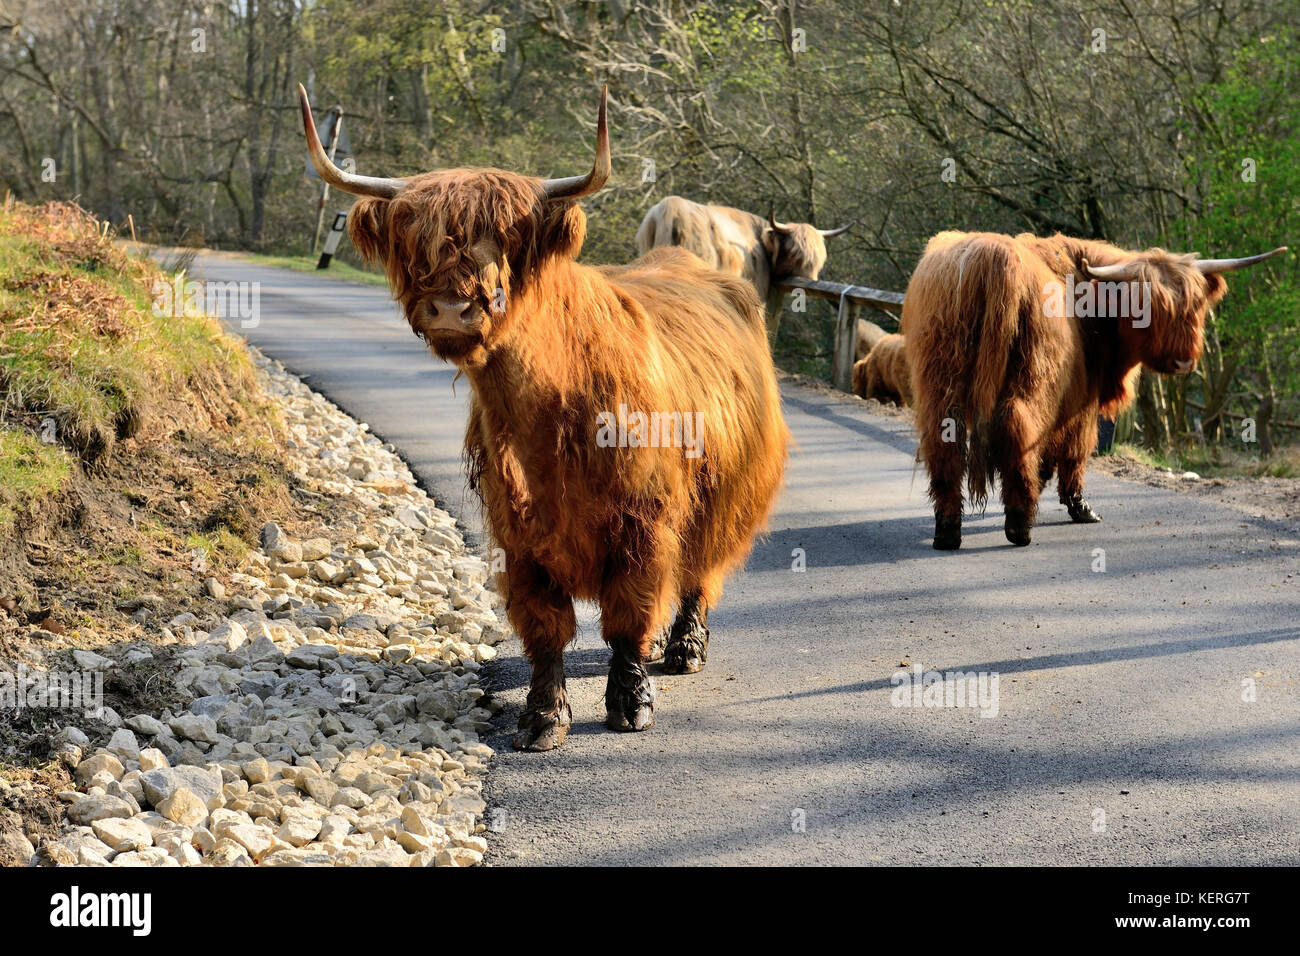 Highland cattle blocking a narrow moorland road prone to flood damage. The roadside drainage channel is filled with Stock Photo